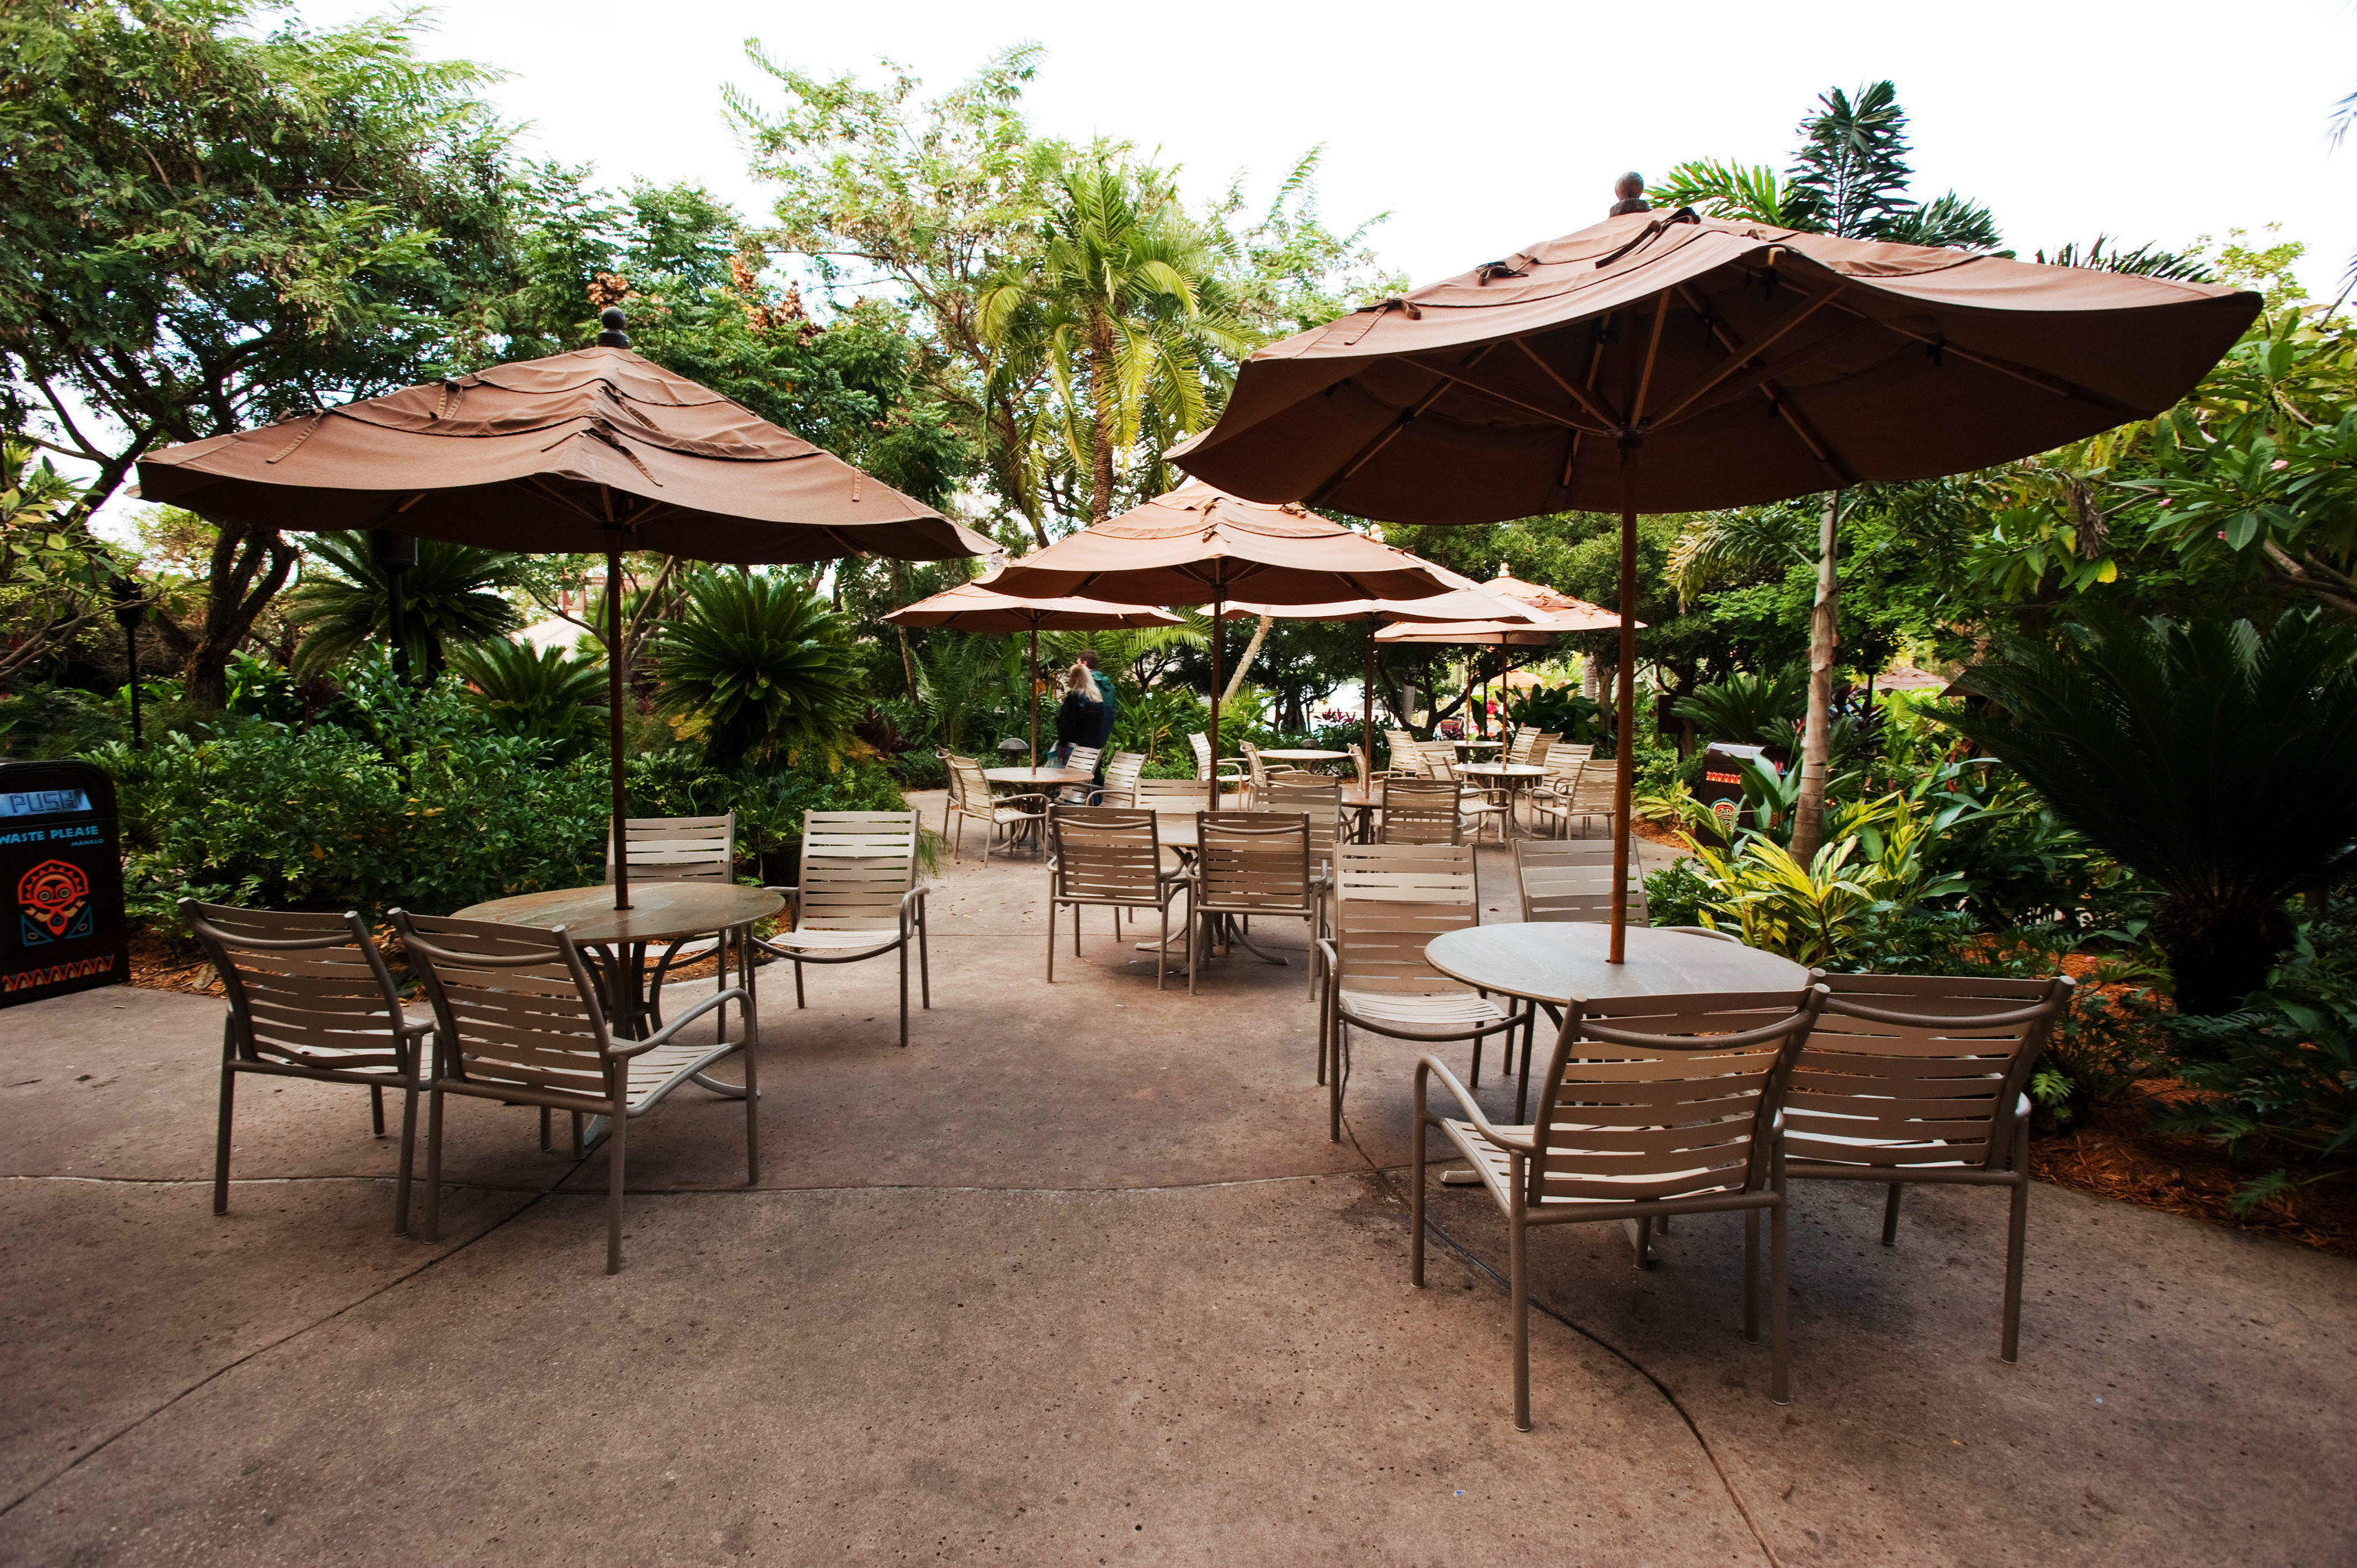 tree umbrella chair set Resort lawn outdoor structure restaurant backyard Patio Dining pavilion gazebo shade lined